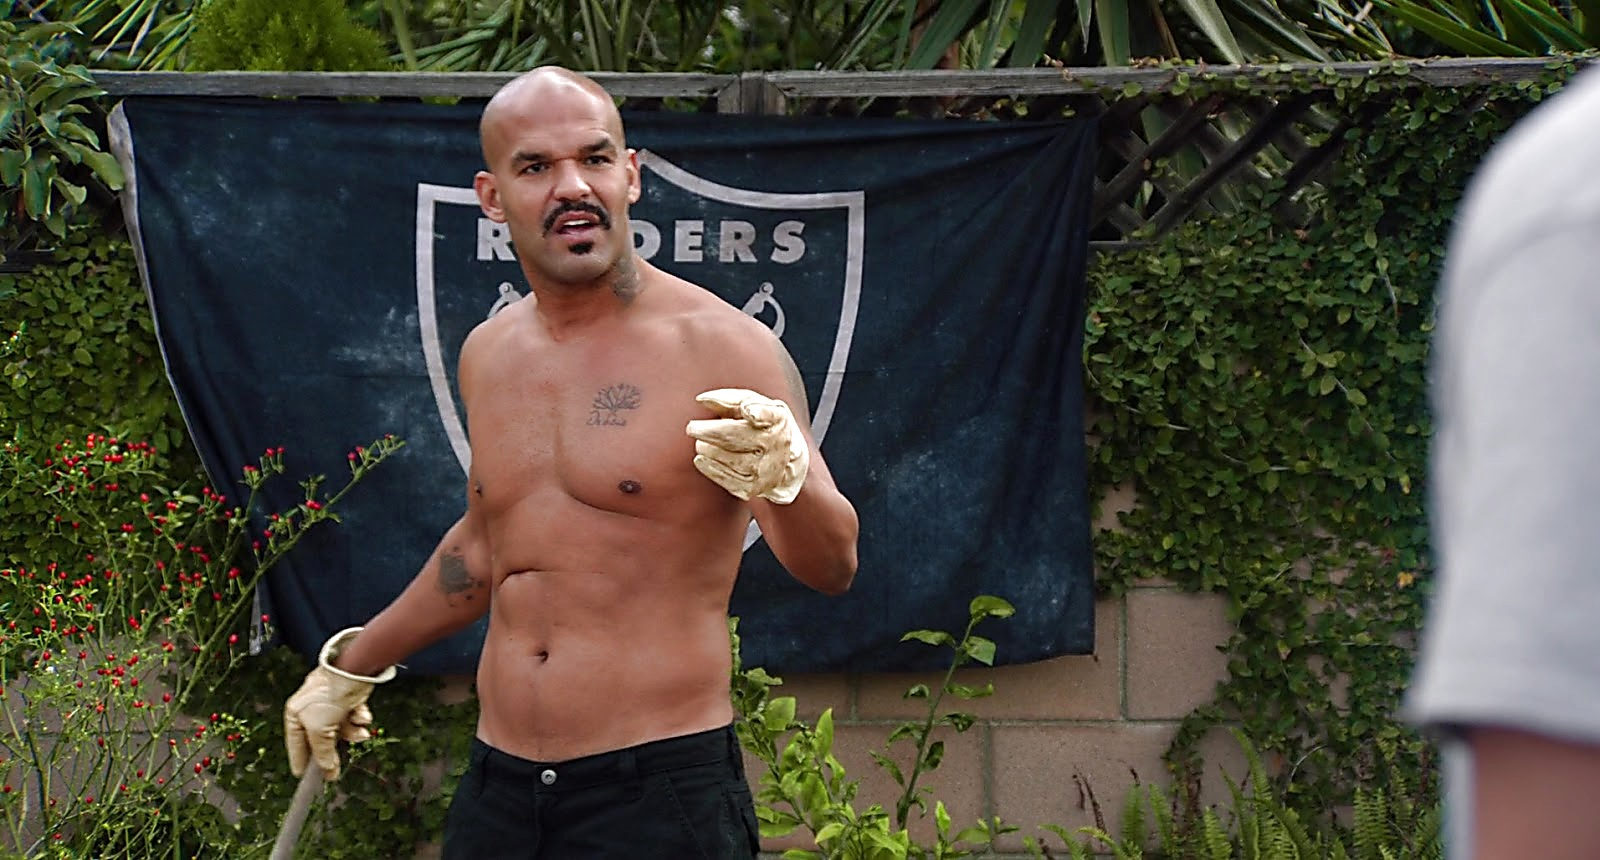 Amaury Nolasco sexy shirtless scene April 4, 2019, 1pm